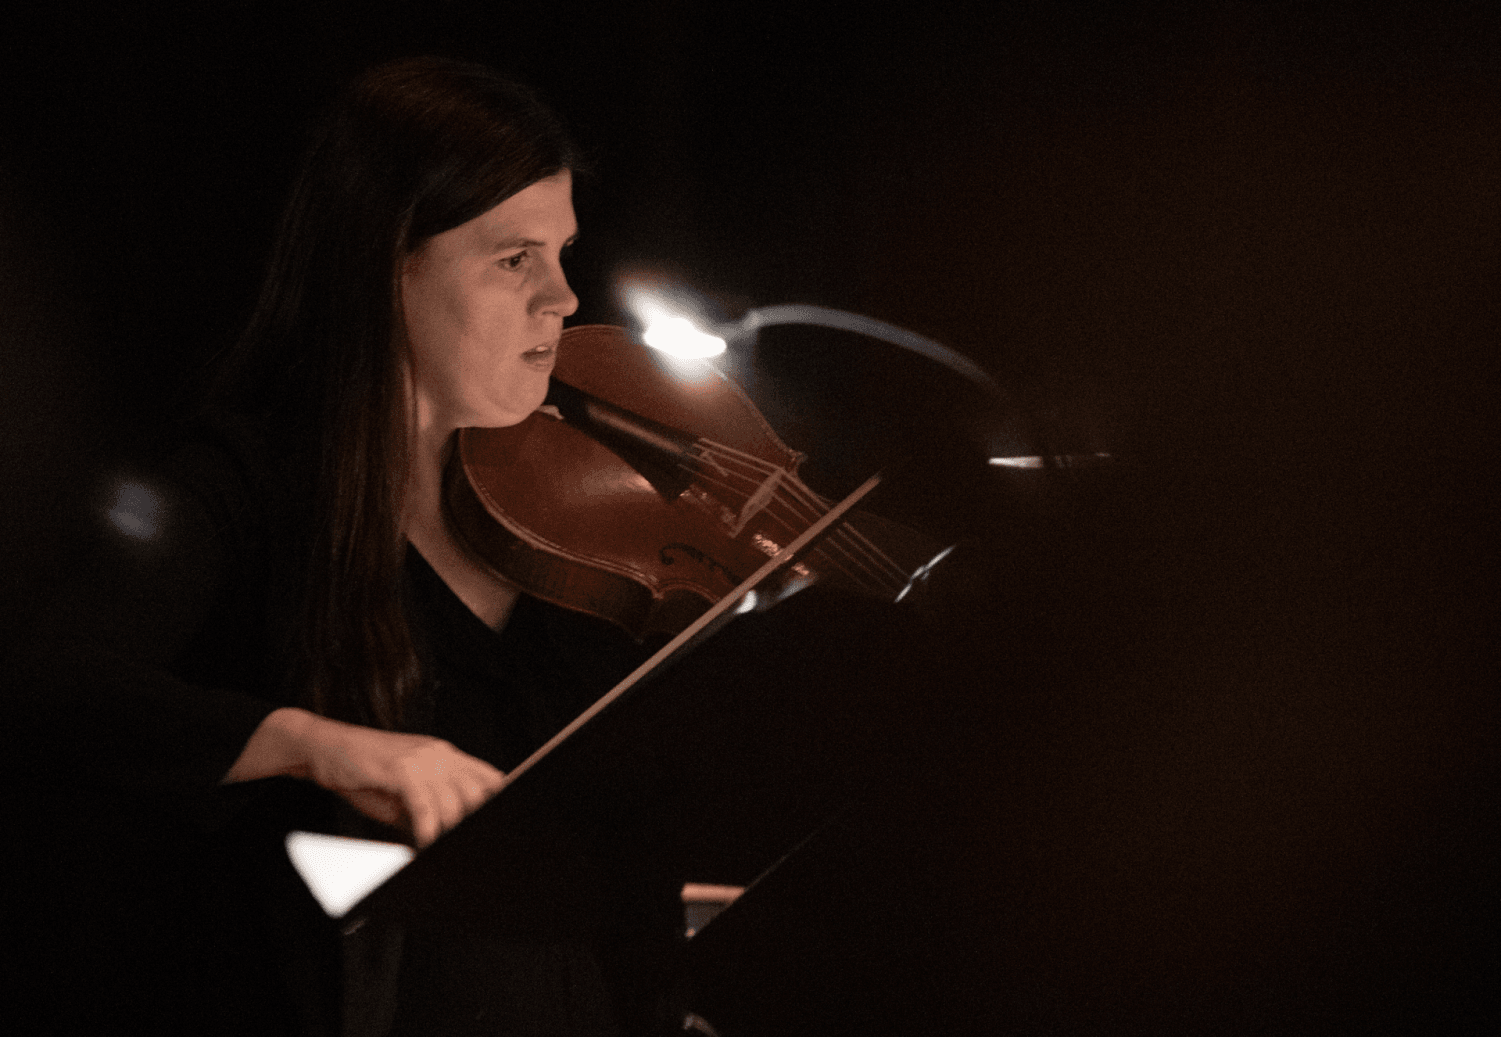 Brandi Berry Benson, a violin professor at DePaul, playing music inpsired by Isabelle d'Este. In this image, she is playing viola at The Newberry Consort.